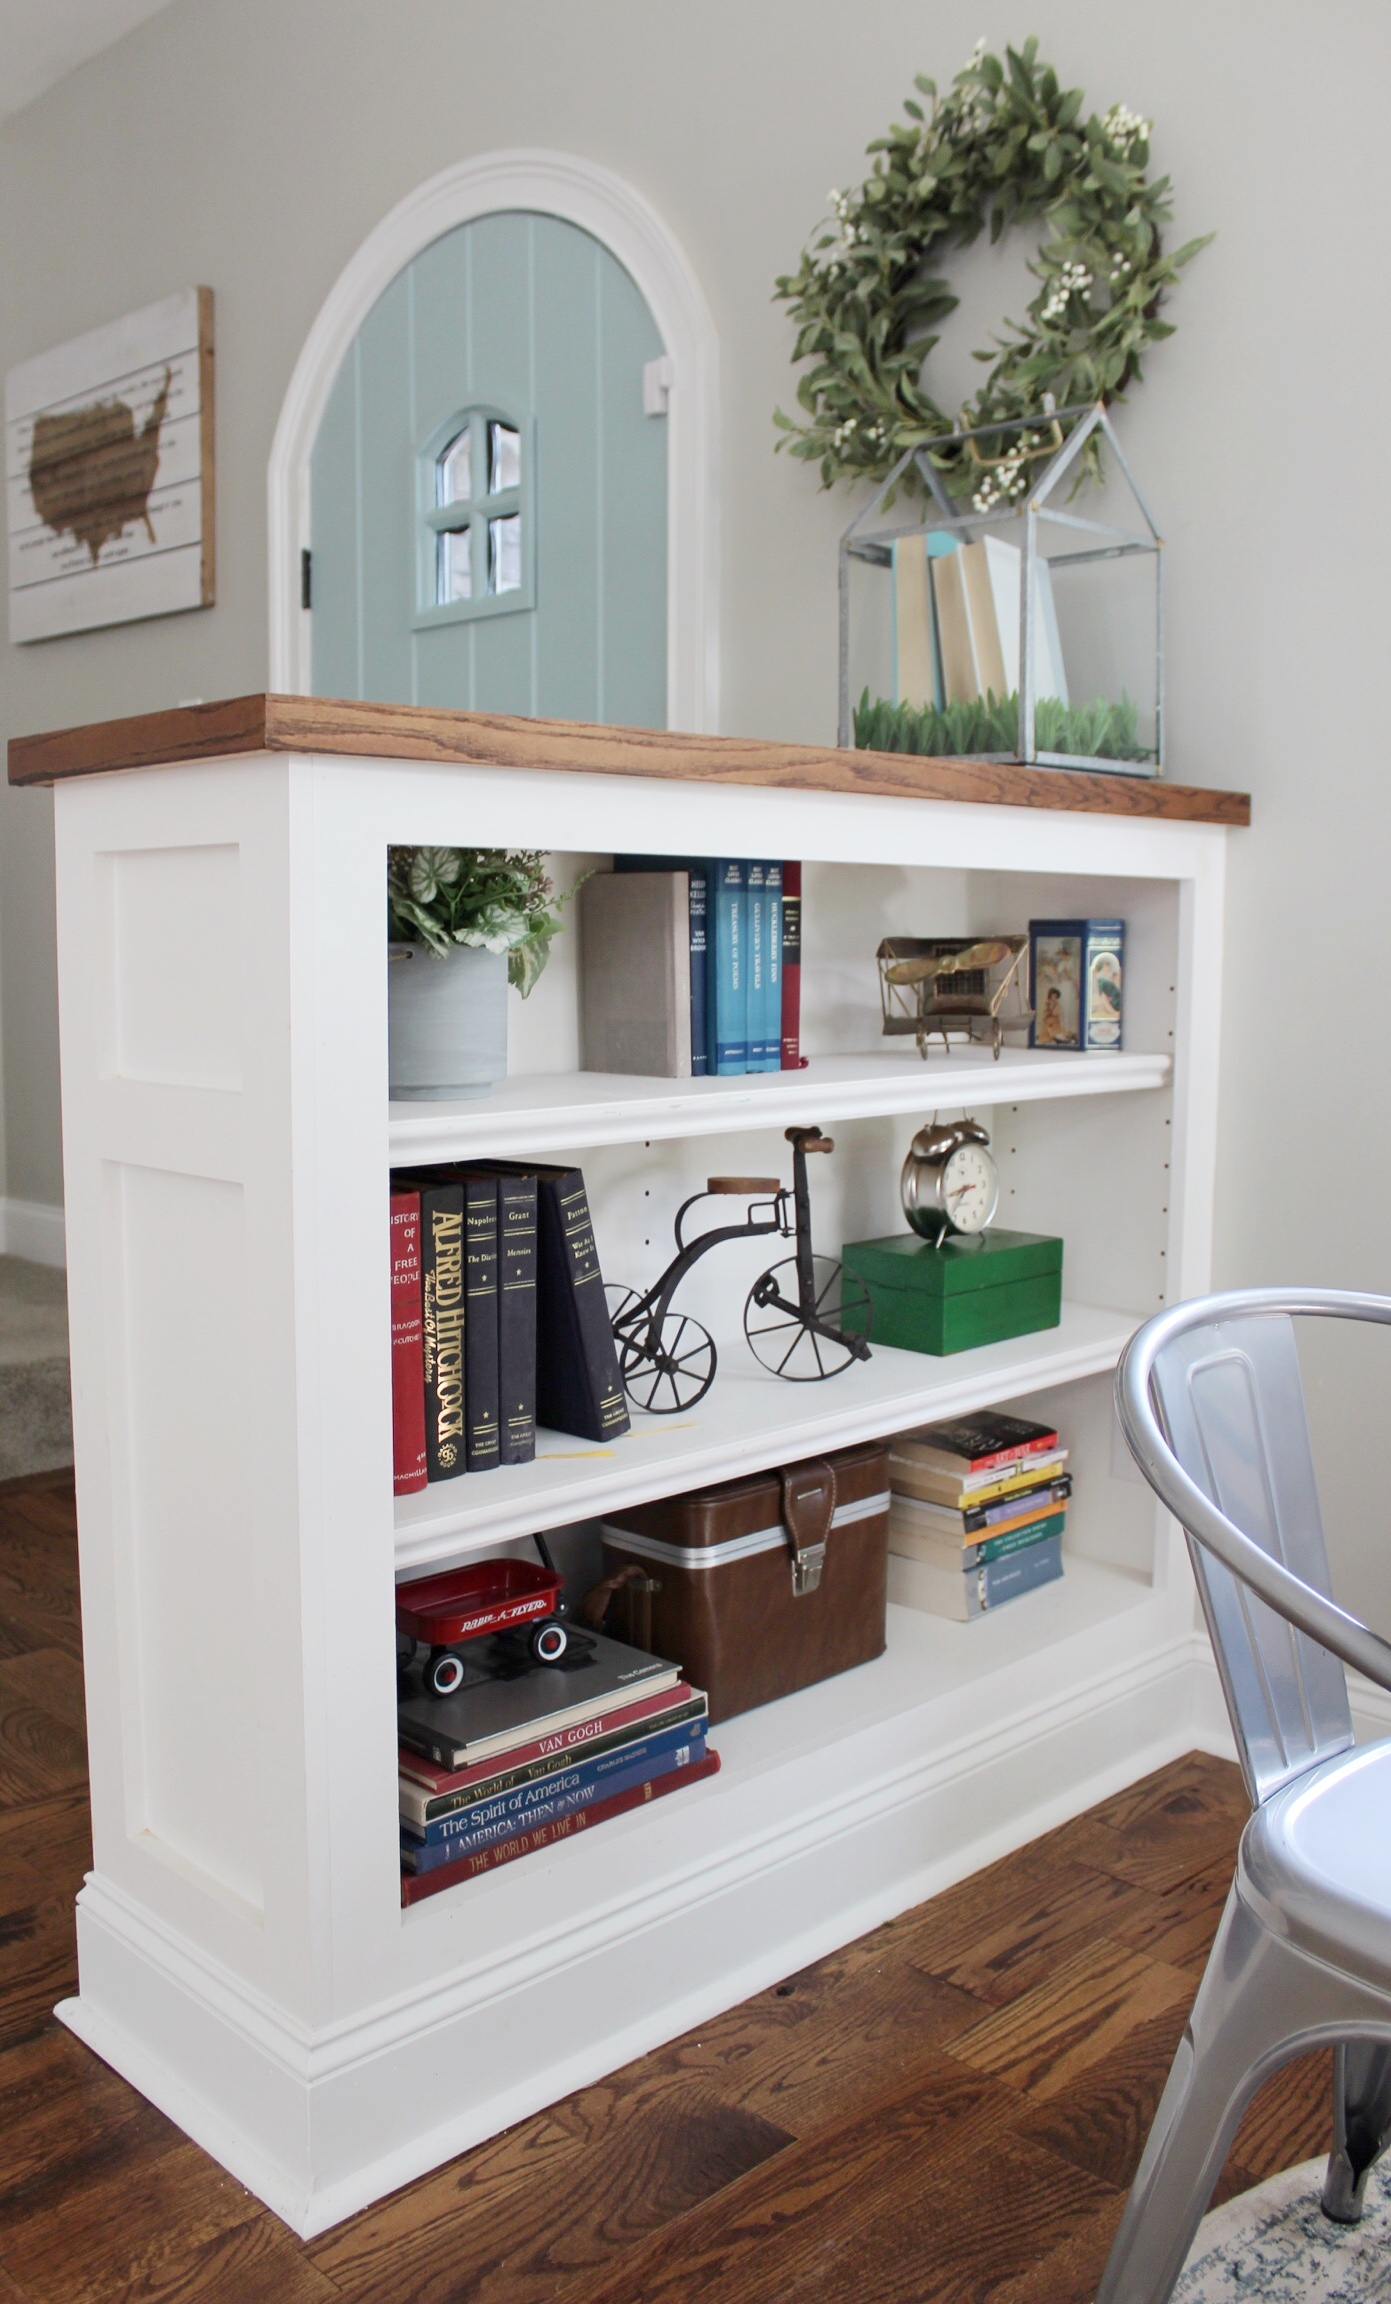 Tips For Styling Shelves • Robyn's Southern Nest